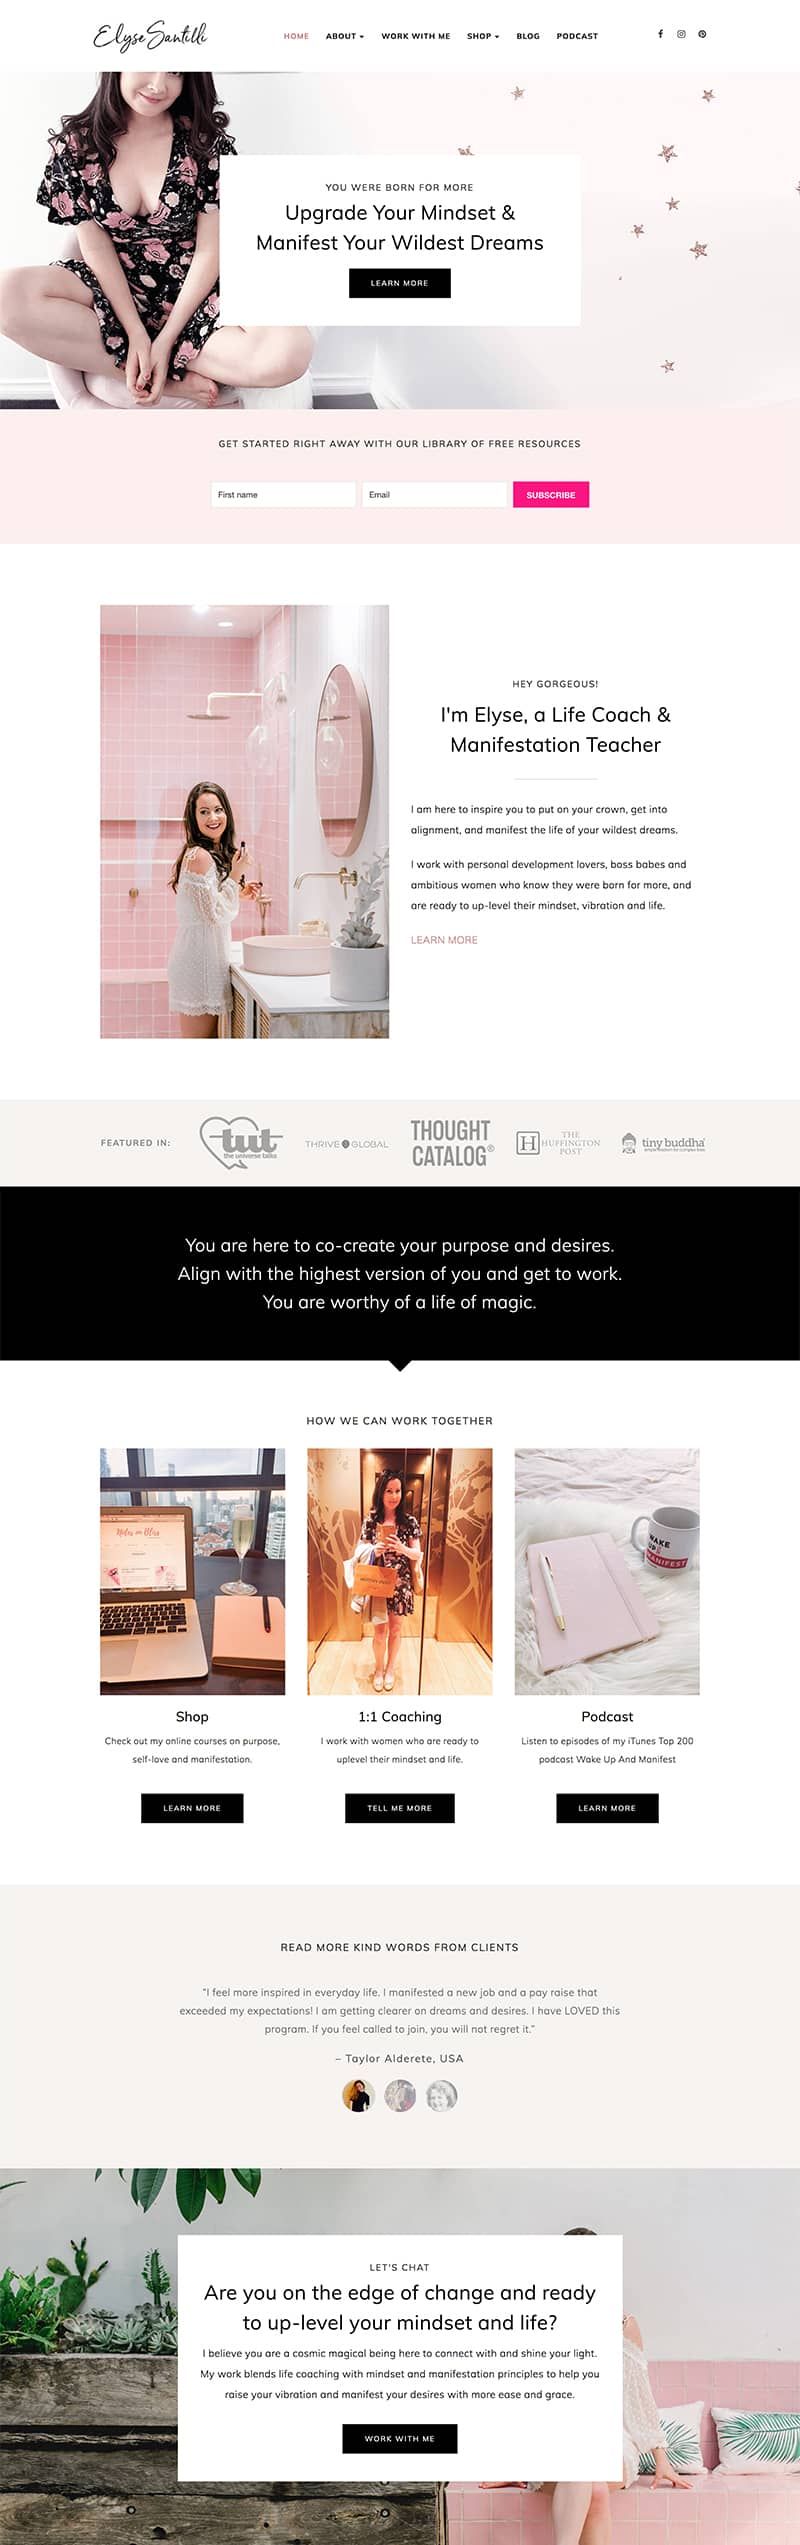 Showcase Bluchic ChicServe WordPress theme for life coach